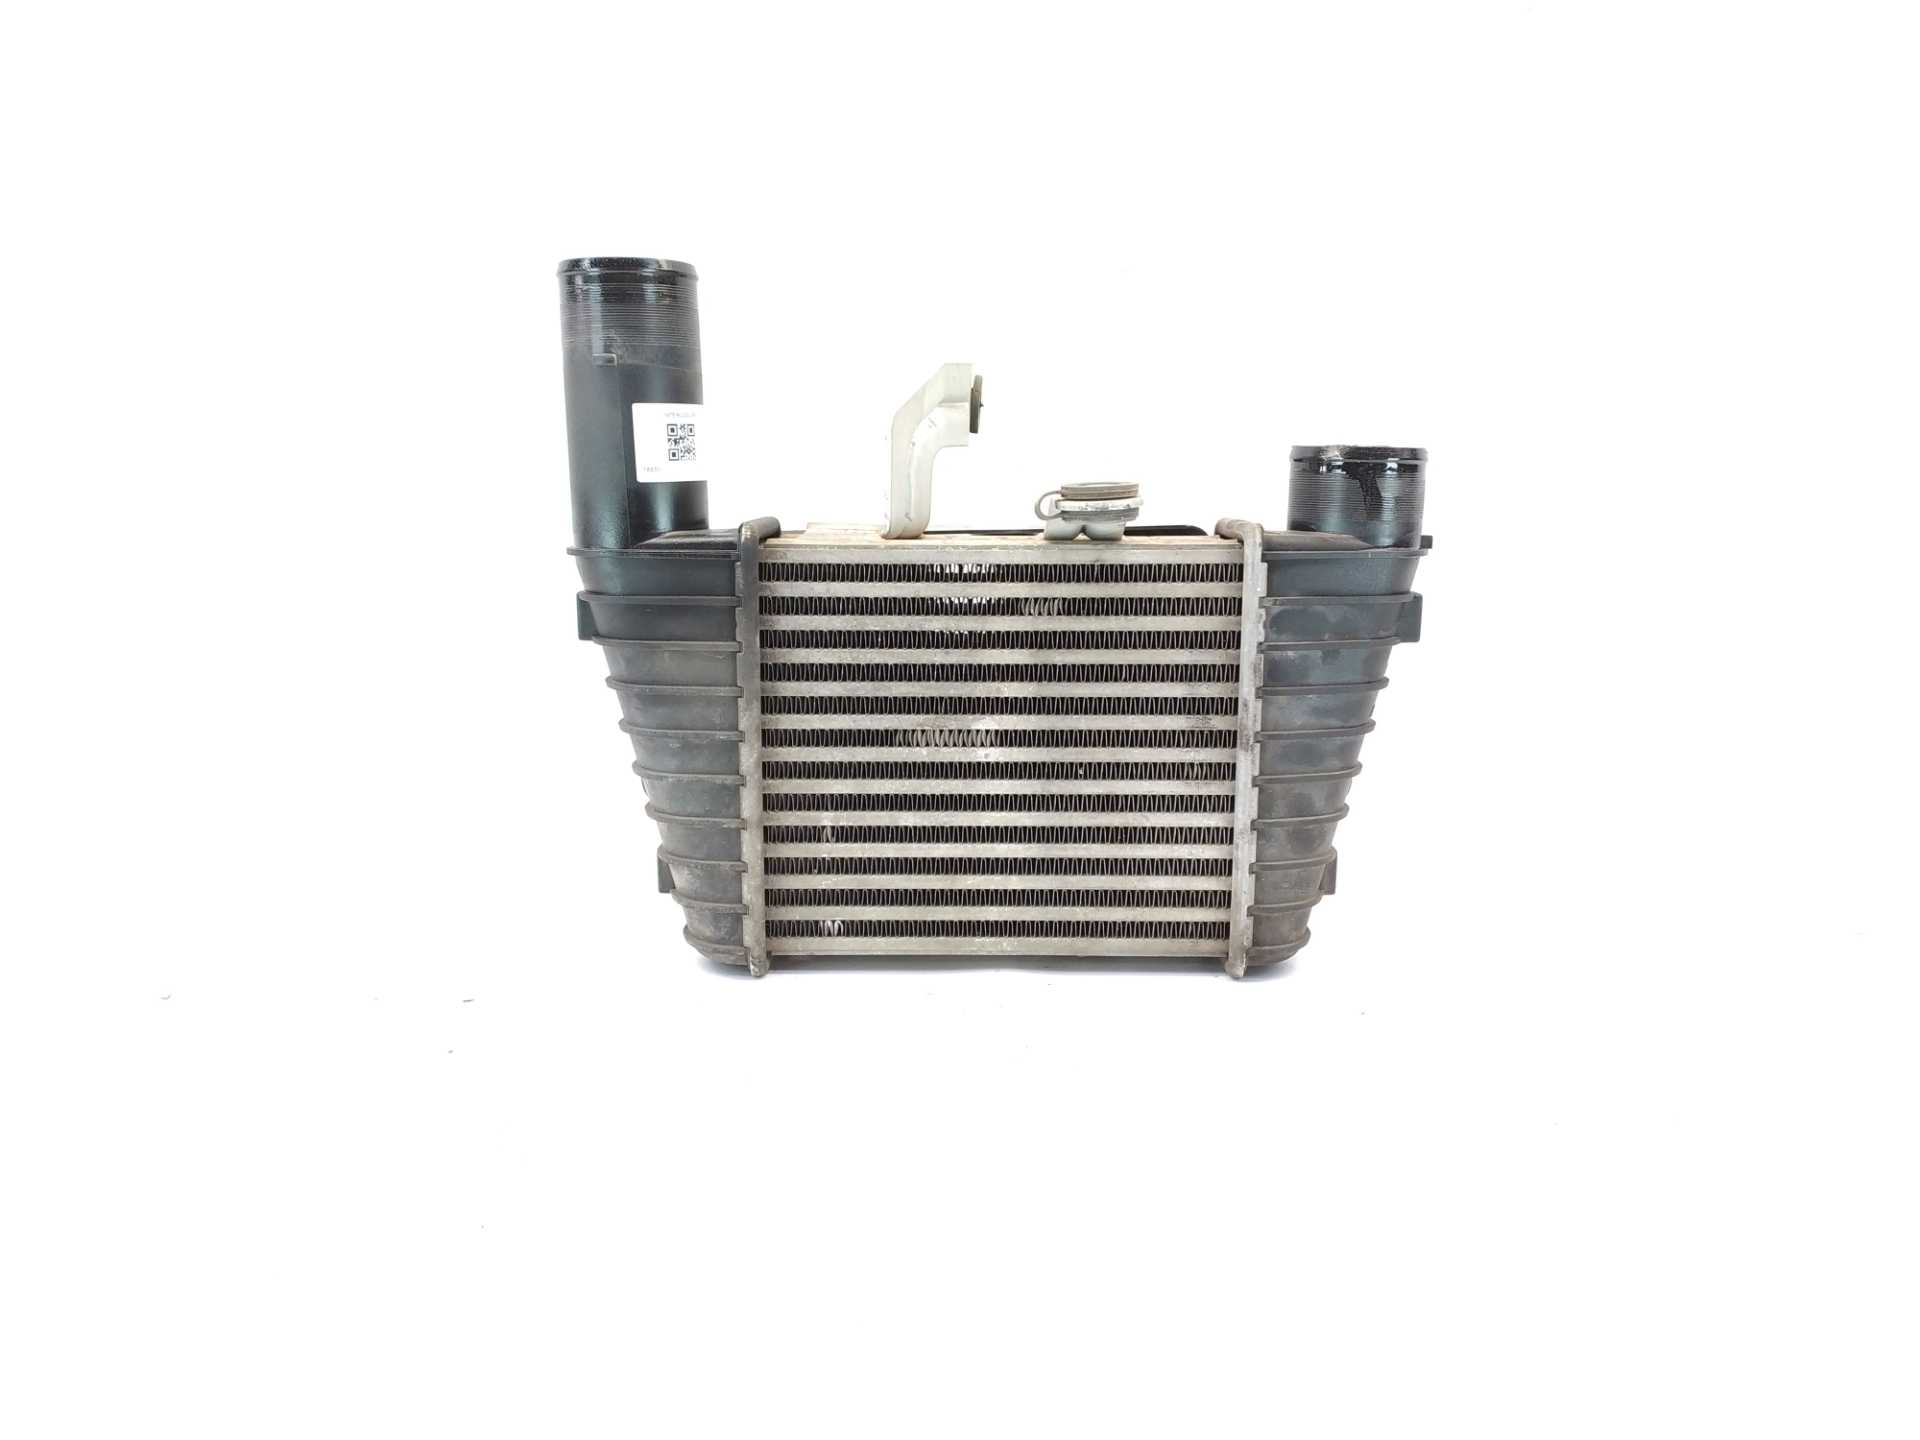 INTERCOOLER SMART FORFOUR 1.5 CDI (454.001) (70 KW / 95 CV) (09.2004 - 06.2006)